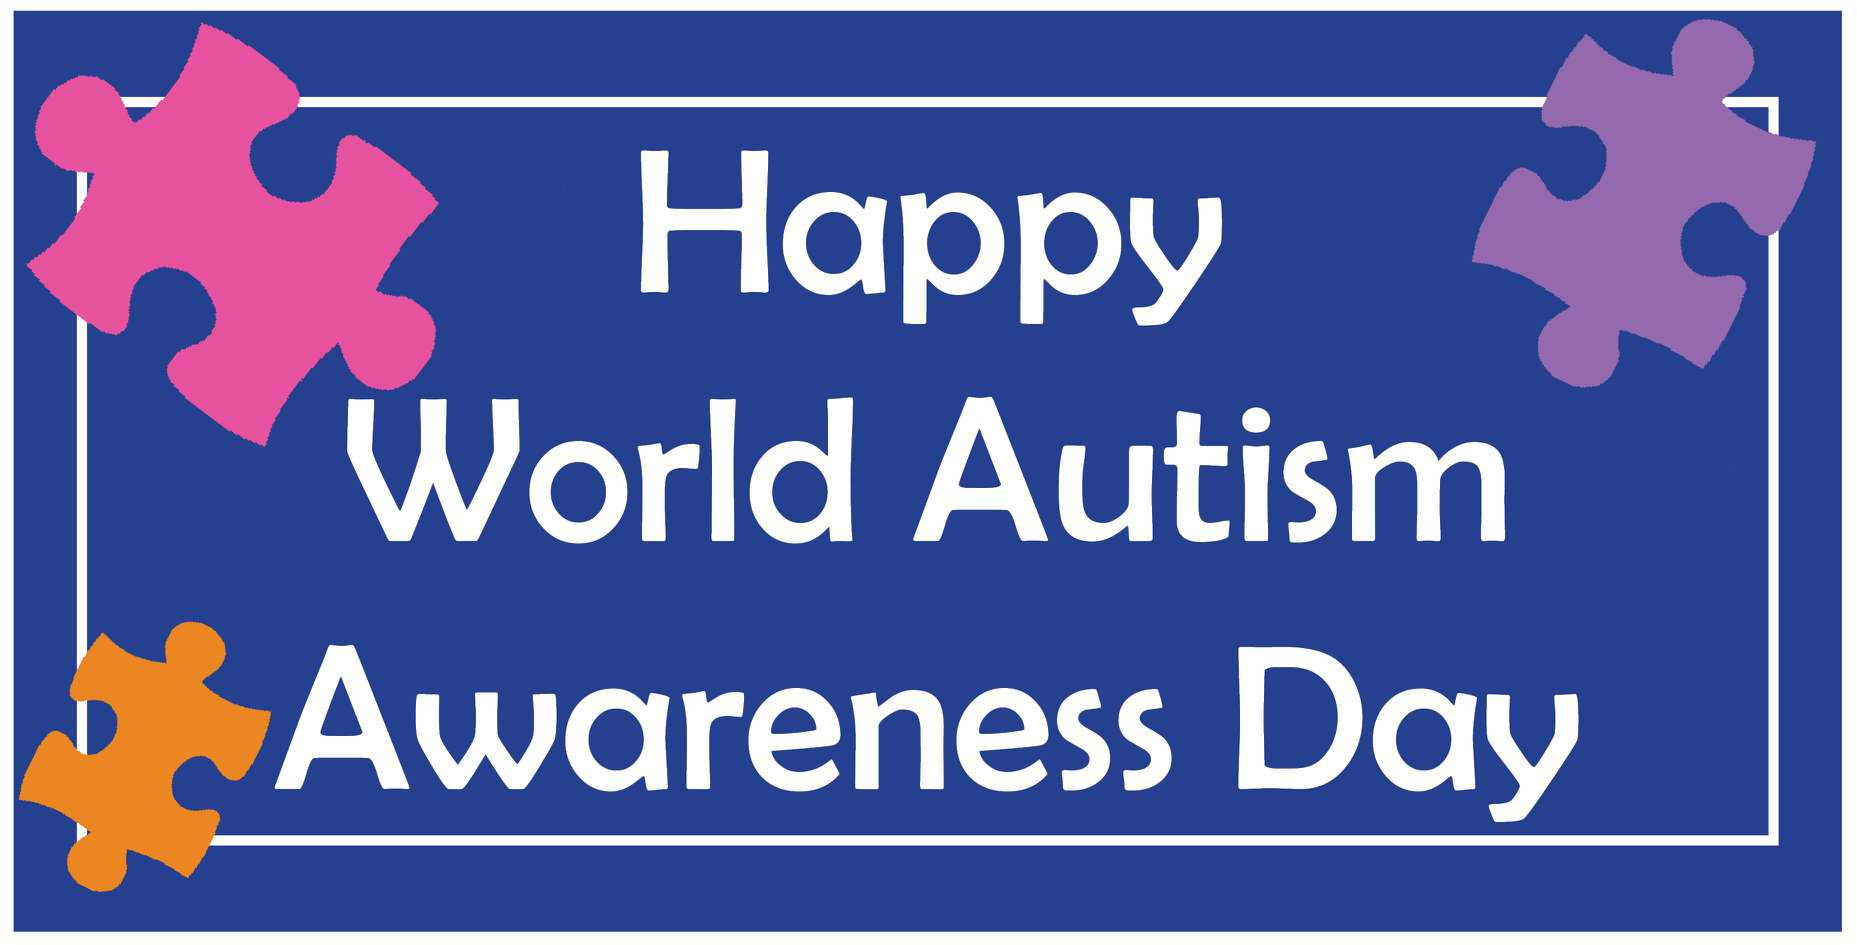 World Autism Awareness Day Wishes Photos